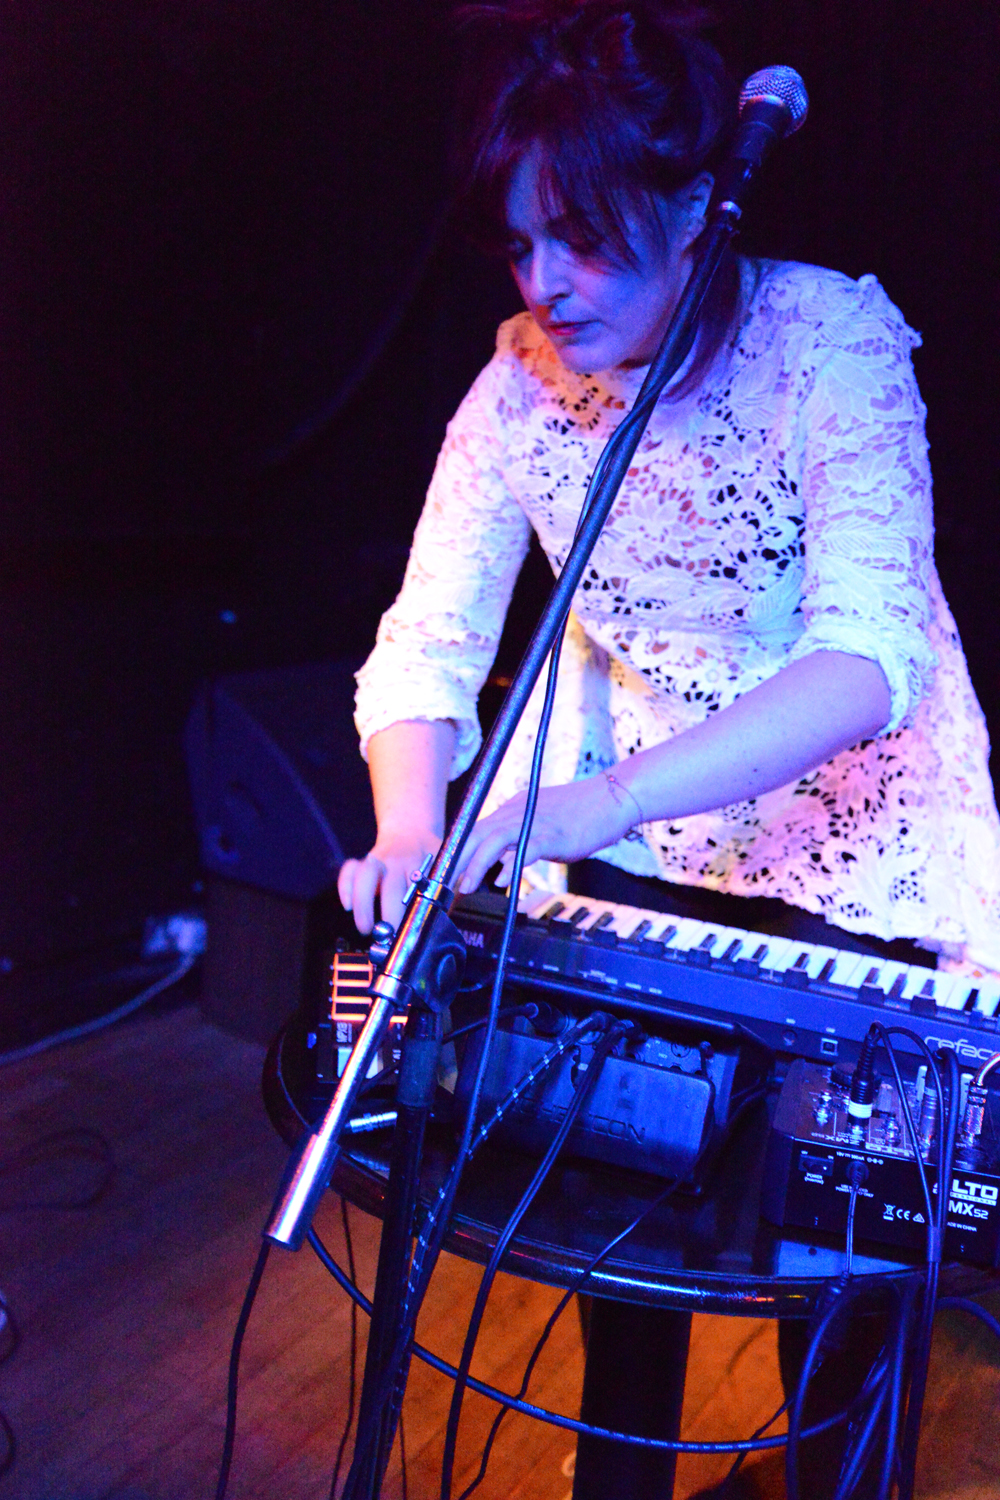 Georgie Jasper White_AUTUMNMUSIC_'DREAMS&FEARS' EP LAUNCH_180508_121_72DPI.JPG